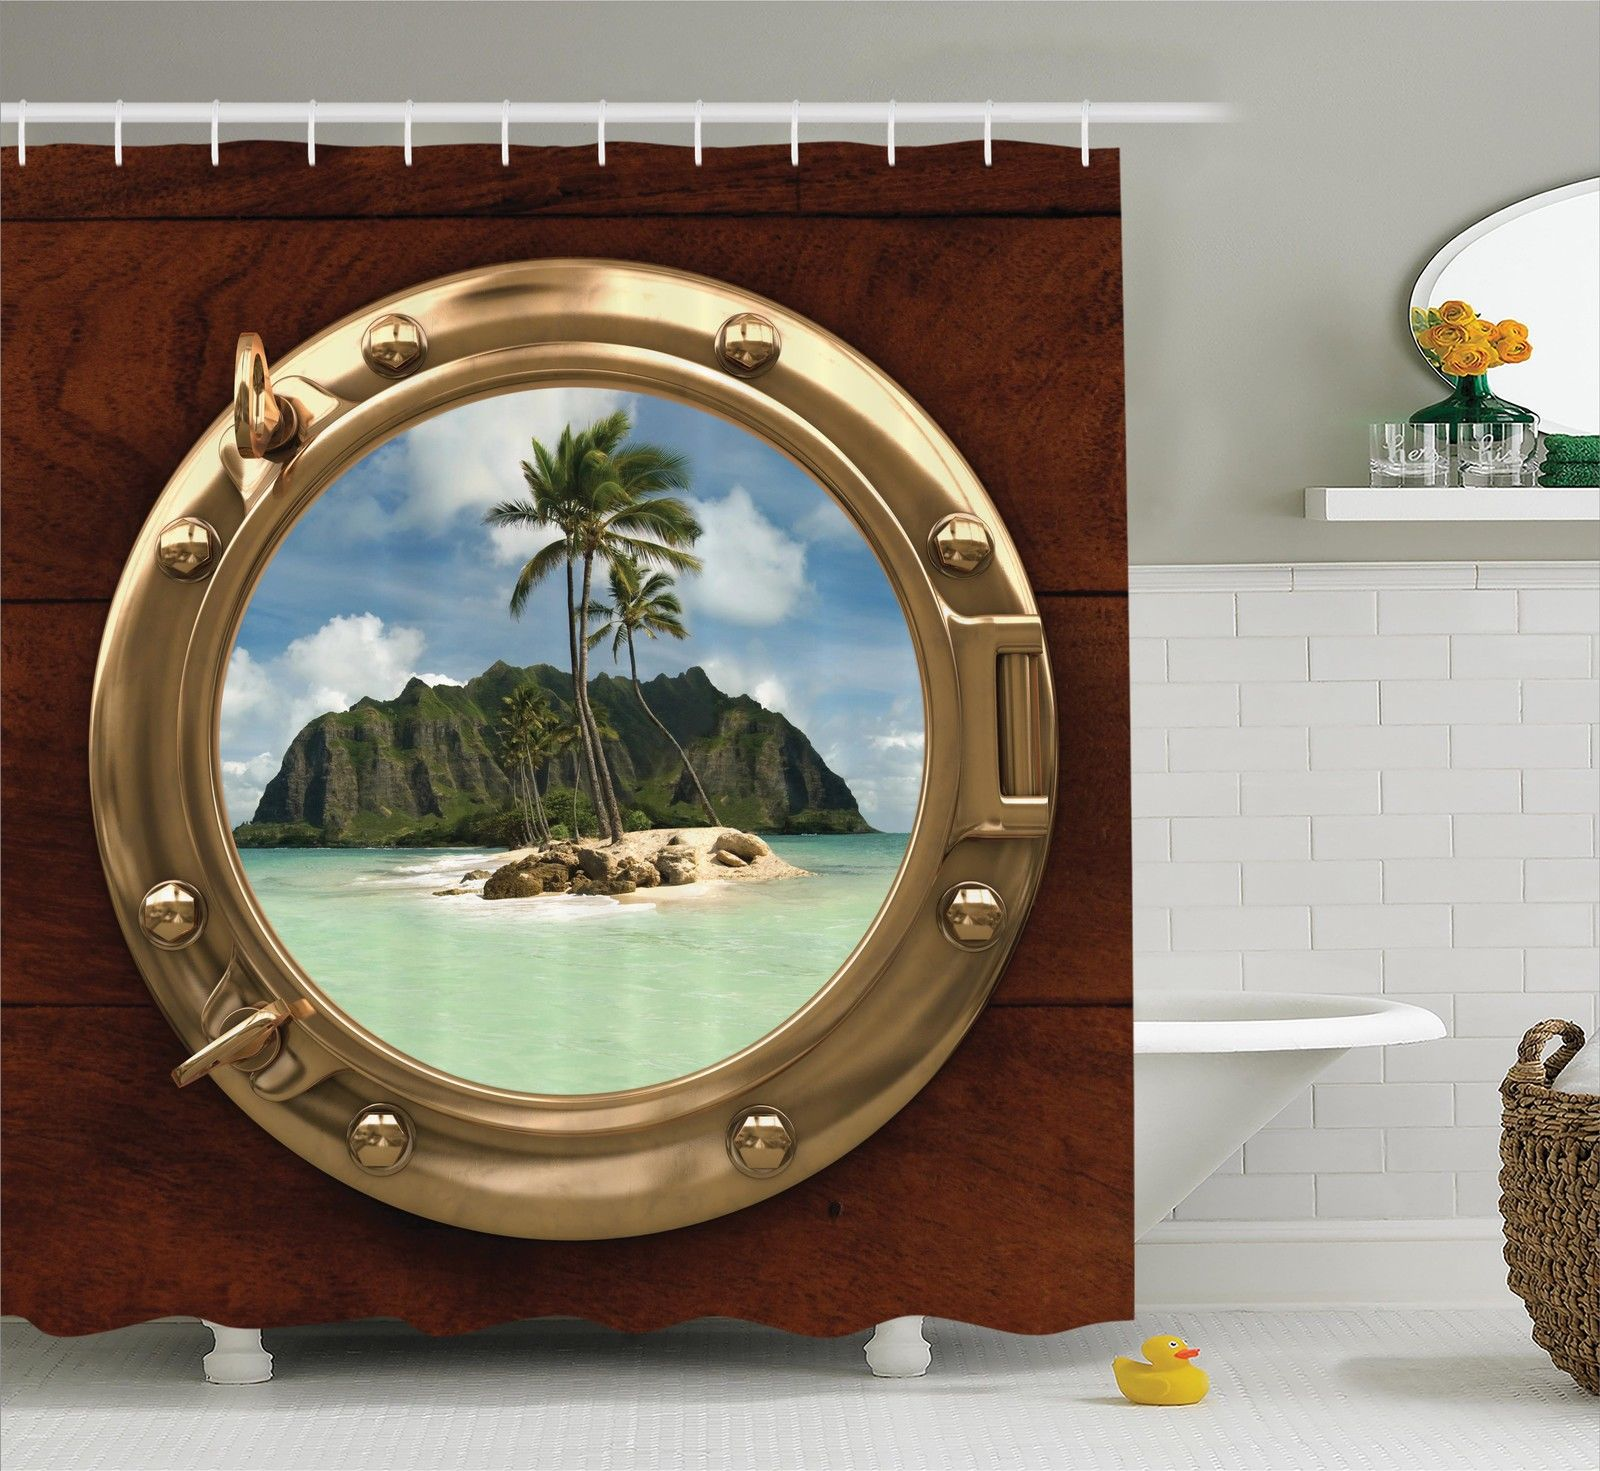 View from Porthole of Ship Tropical Island and Palm Tree Sand Shower Curtain Set